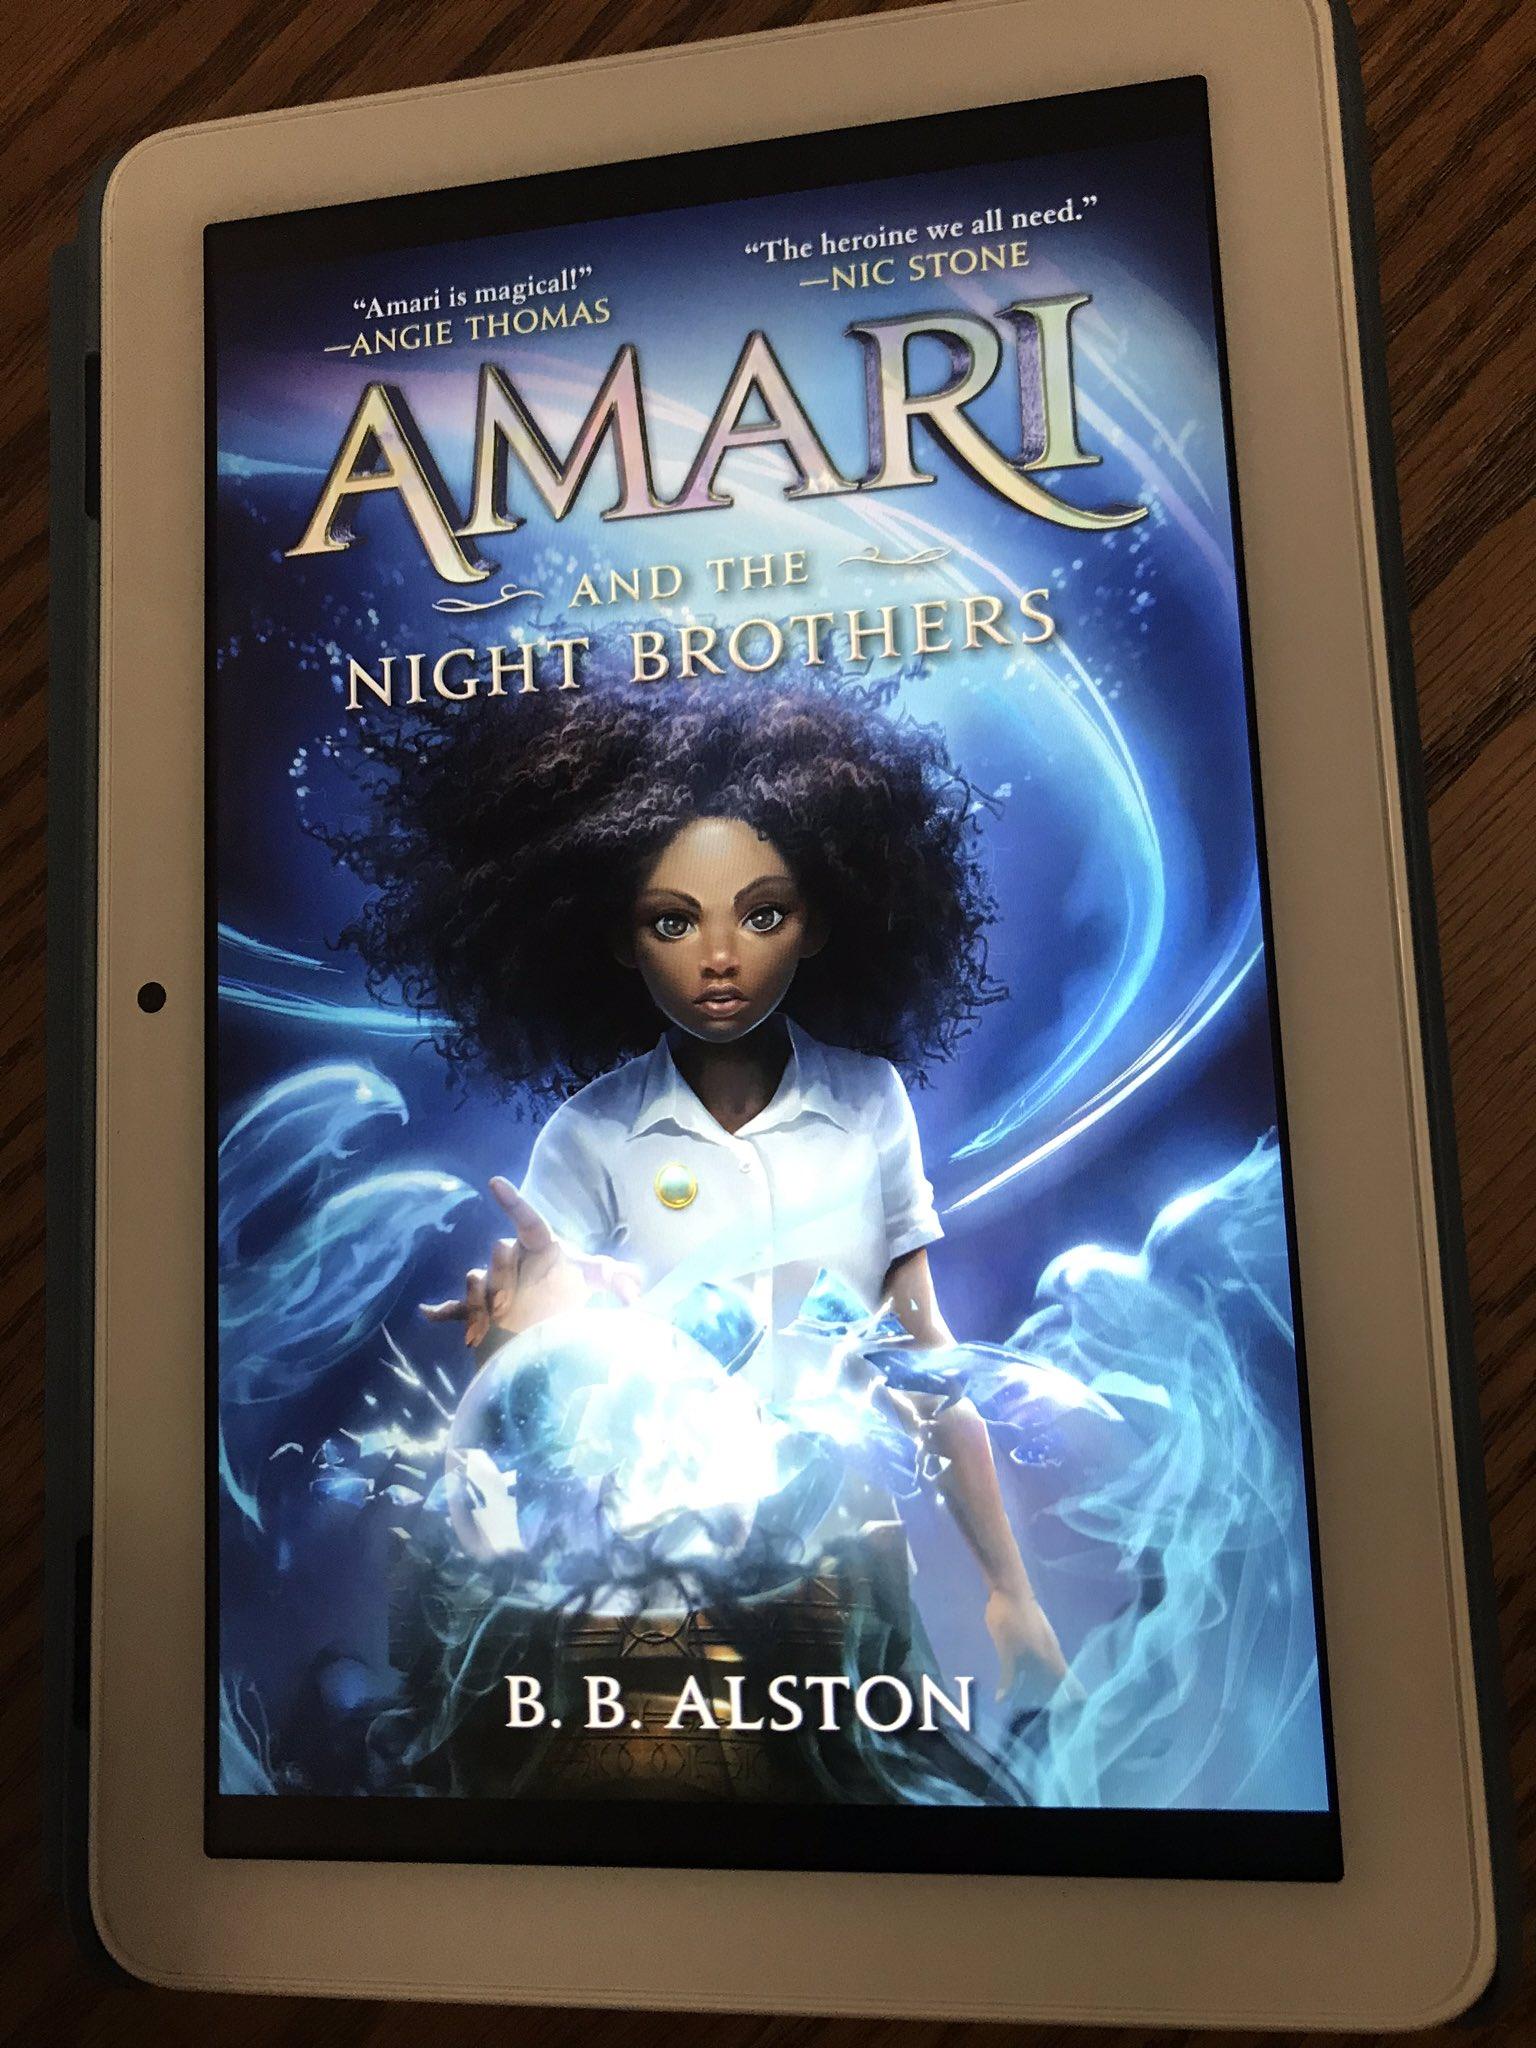 book cover for Amari and the Night Brothers on e-reader